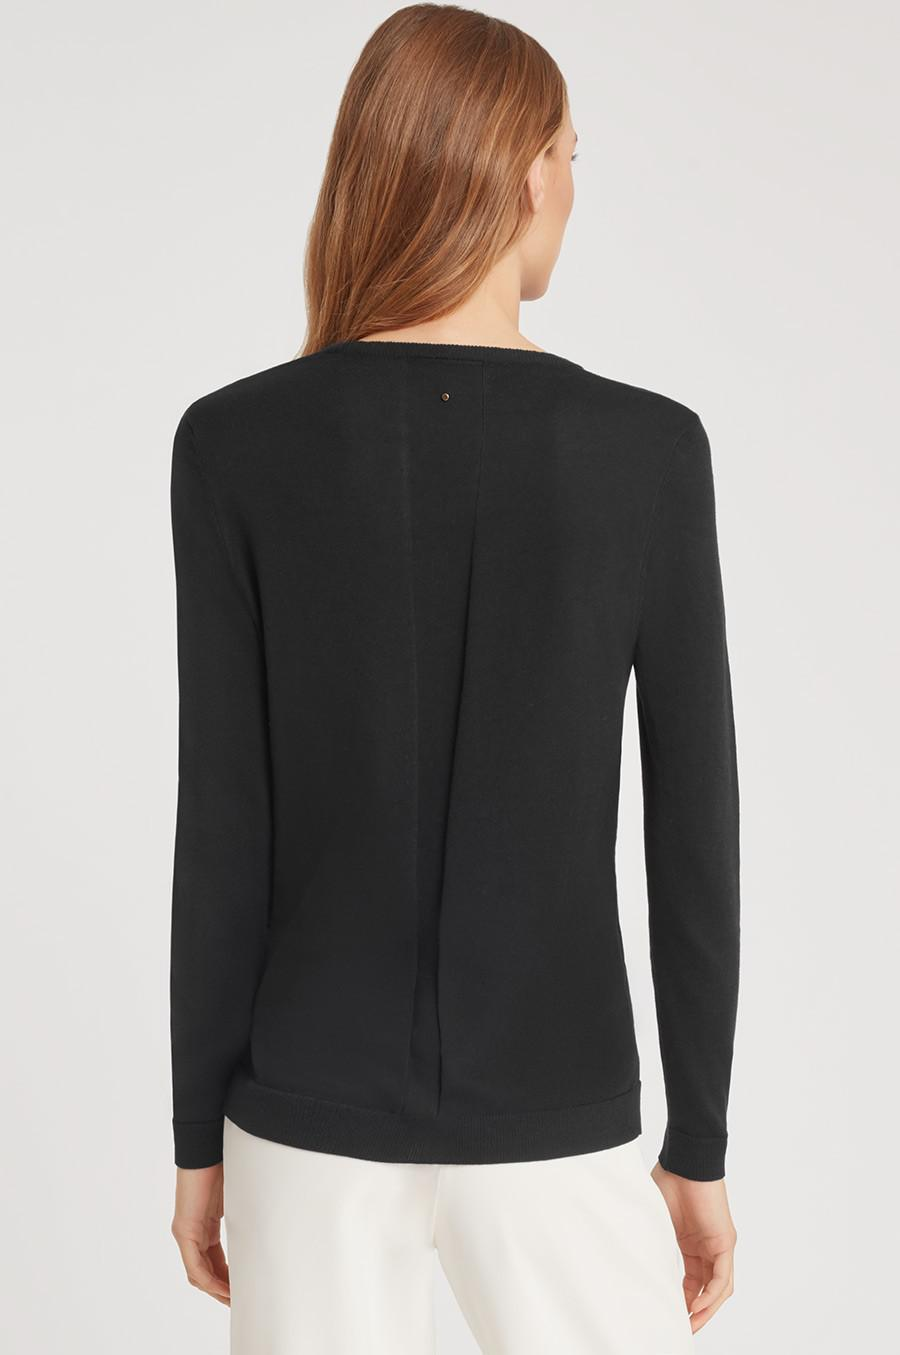 Women's Classic Cotton Cashmere V-Neck Sweater in Black | Size: XS | Cotton Blend by Cuyana 2